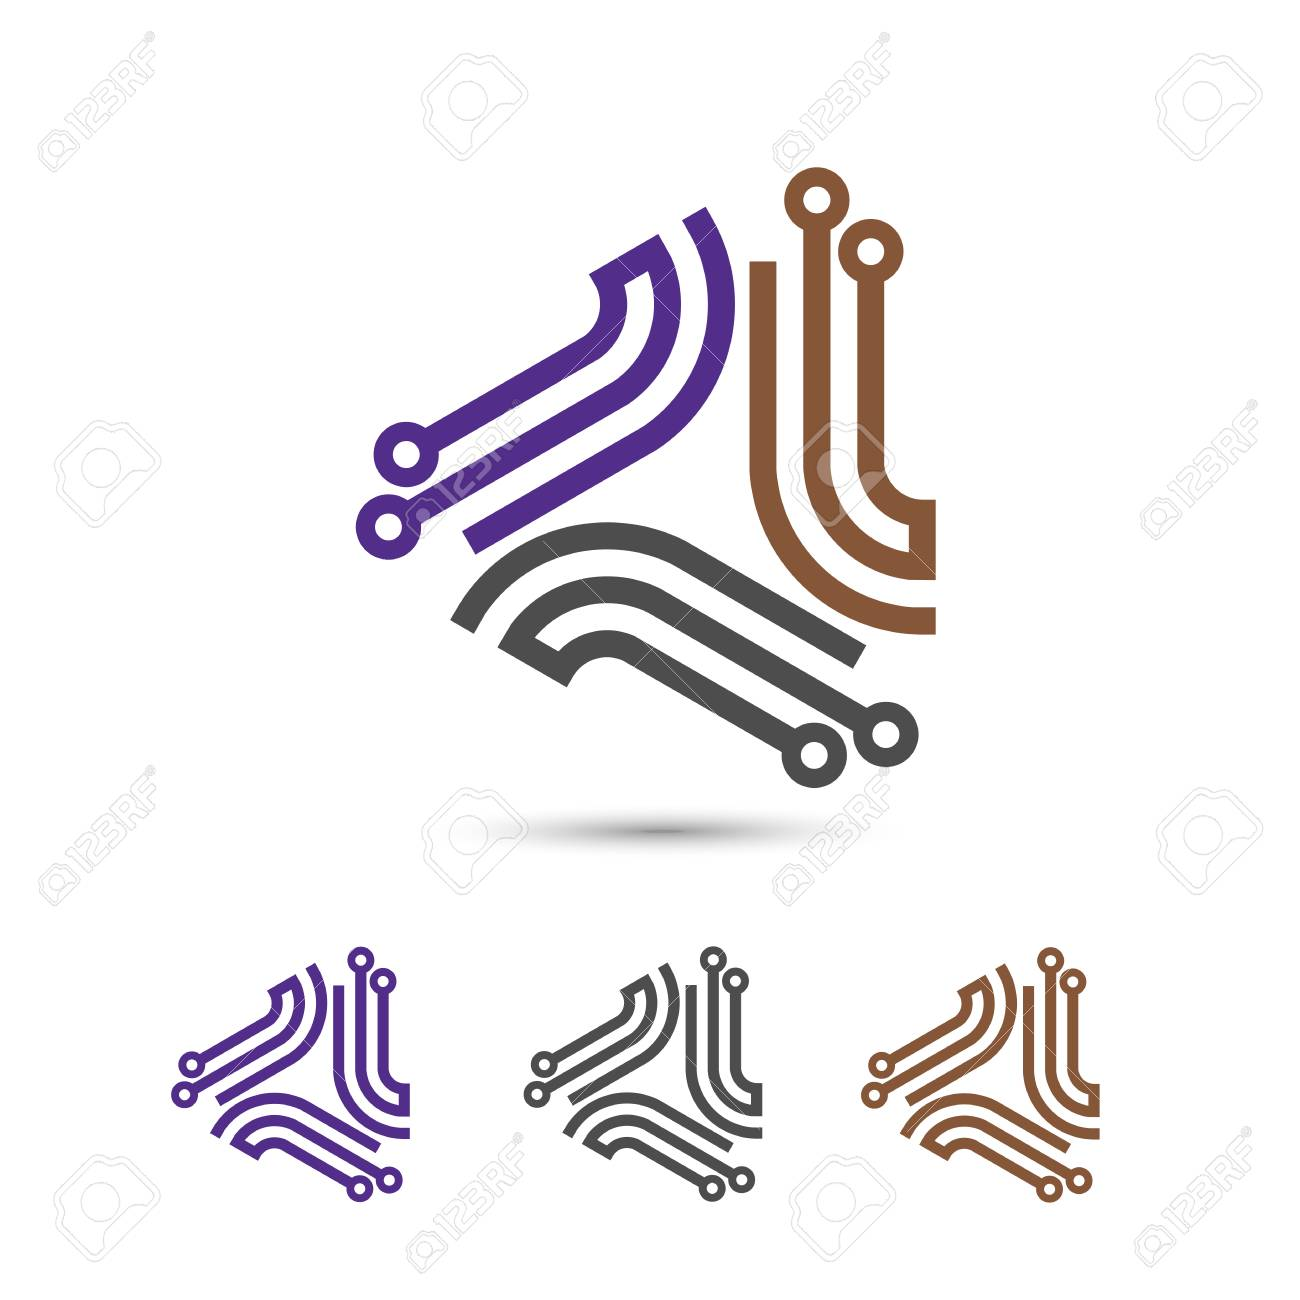 Digital Electronics Design Creative Electronic Circuits Icon It Technology Concept Stock Vector 89208678